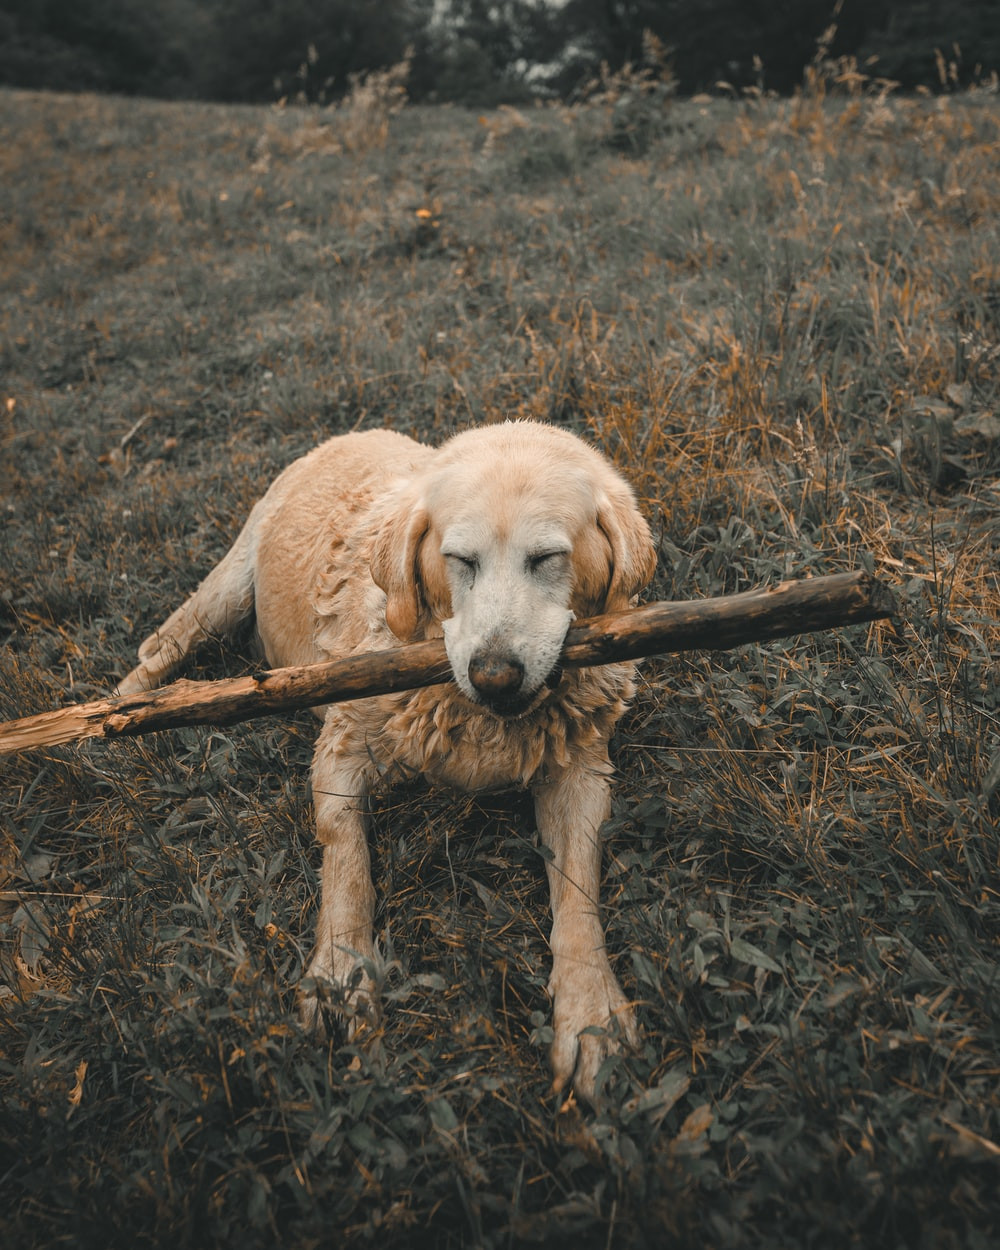 Dog plays with stick